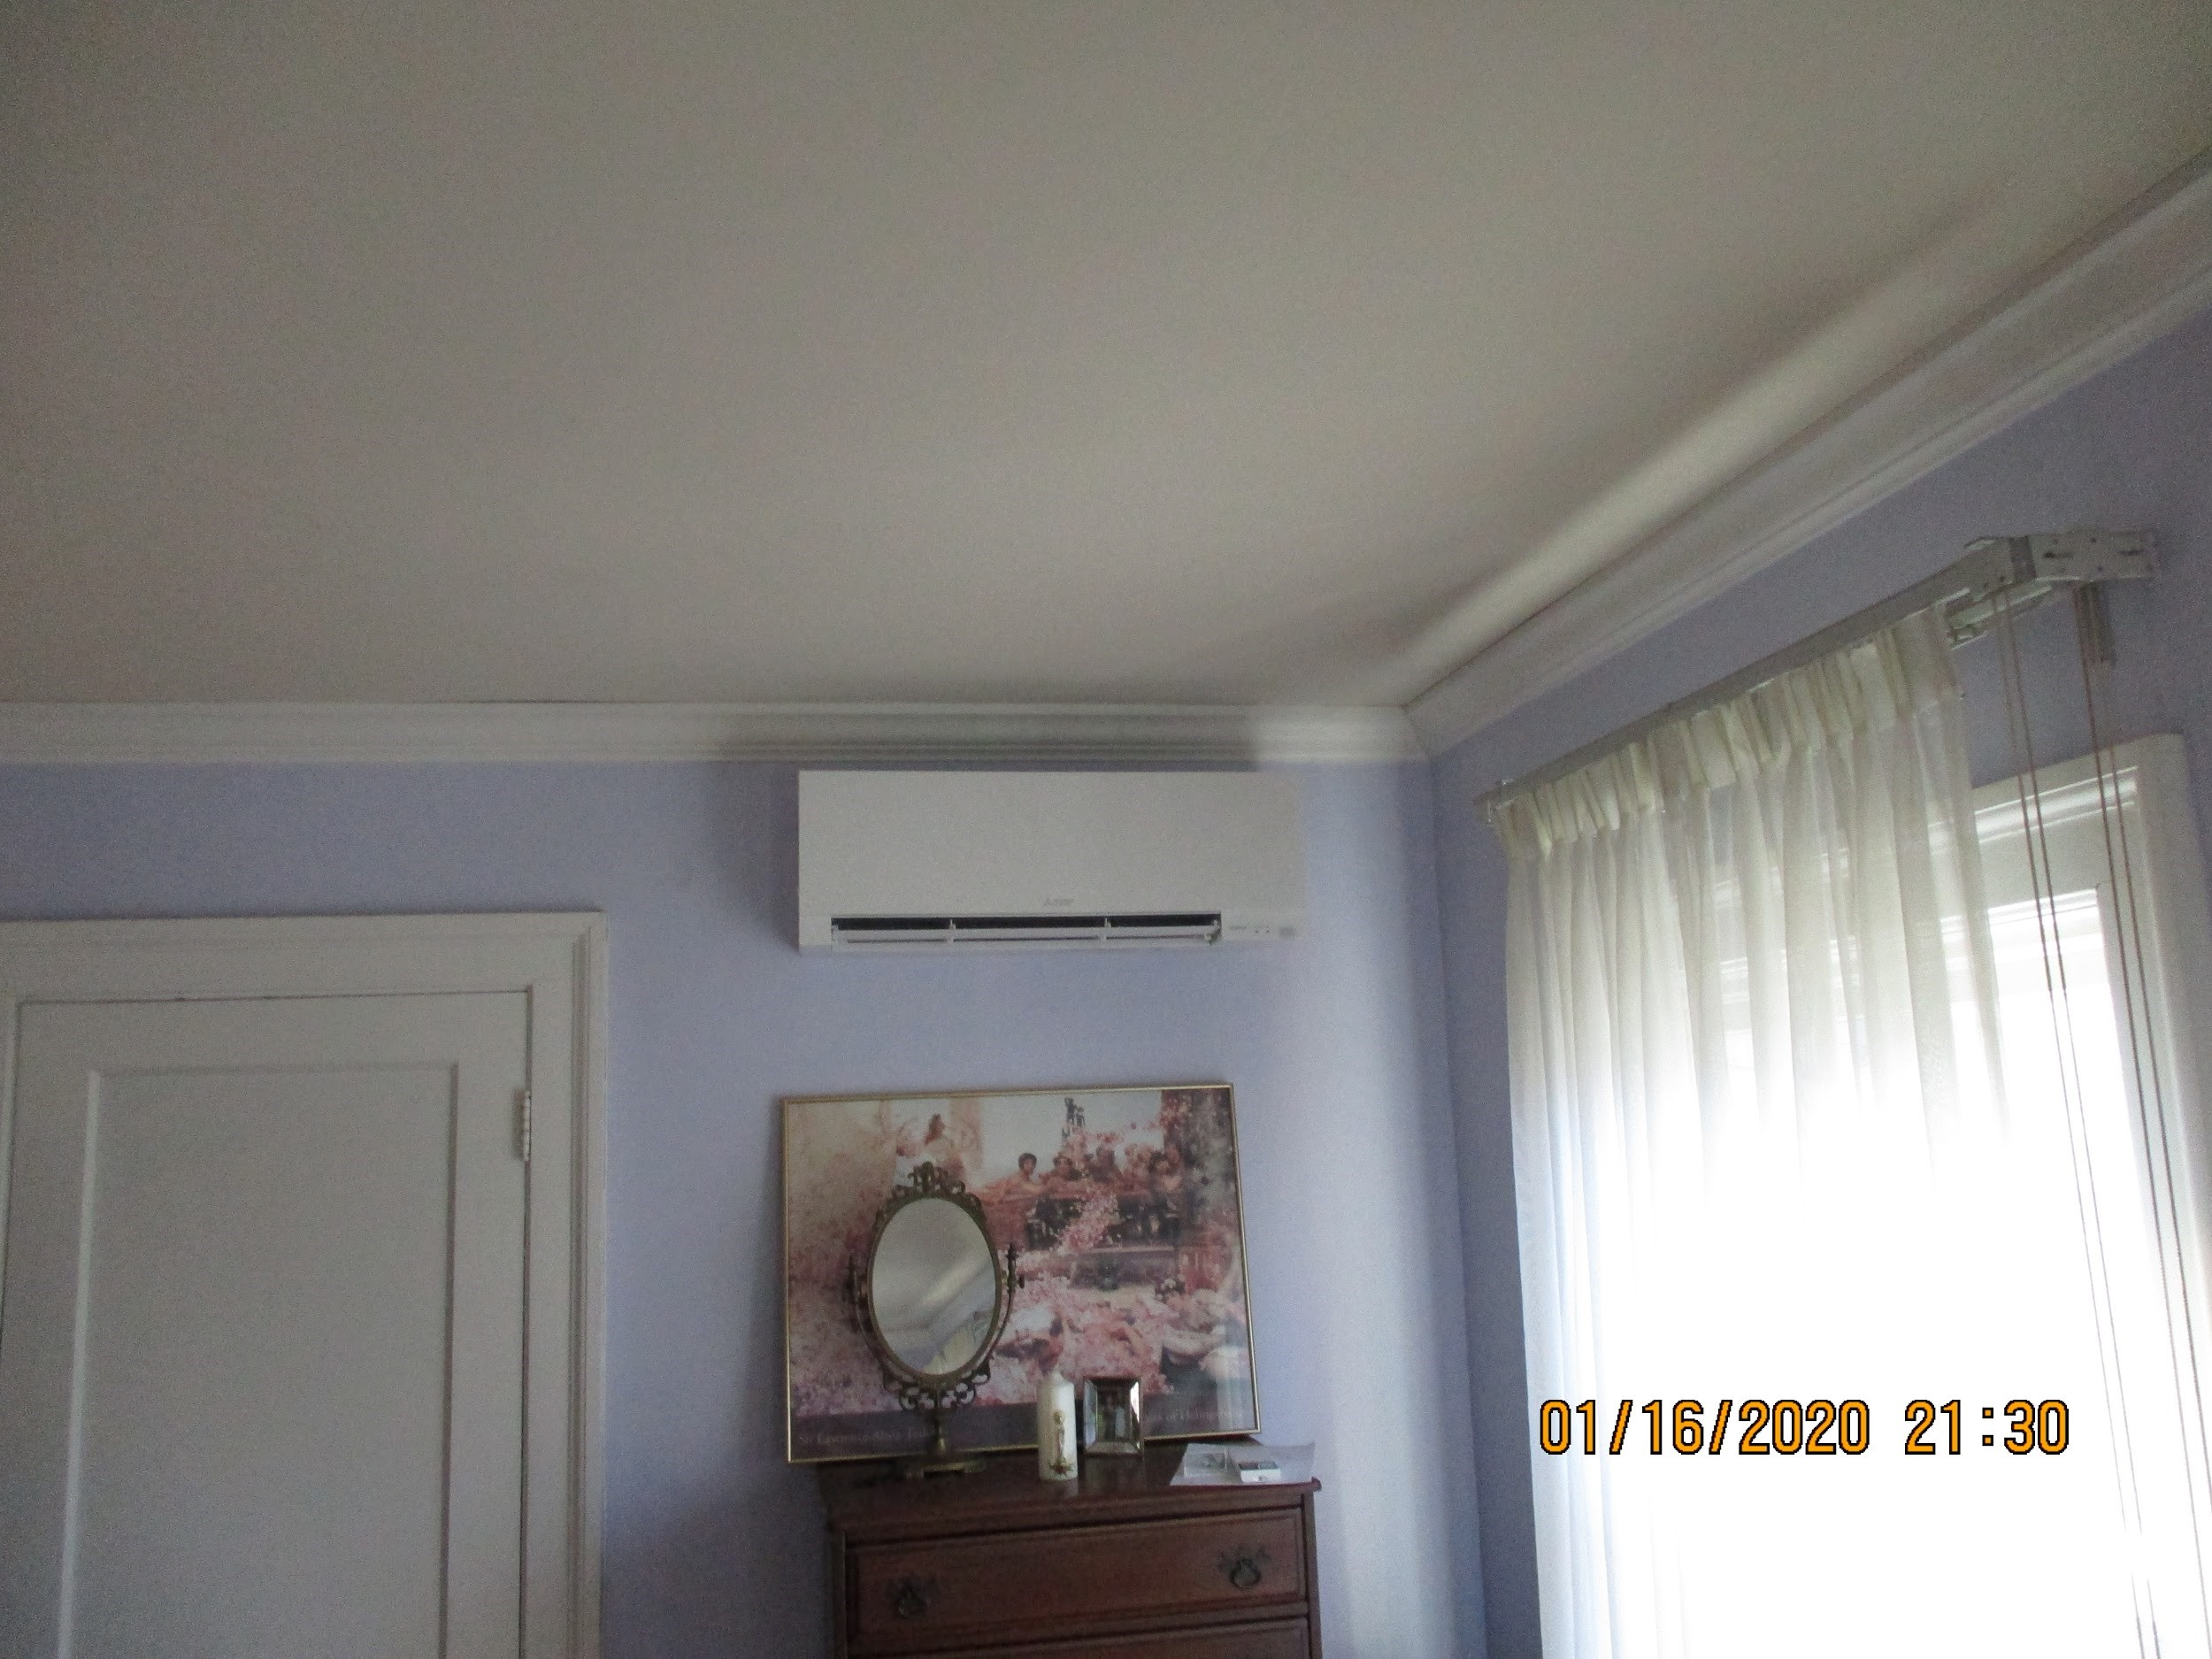 Indoor Mitsubishi ductless AC installed in a bedroom.